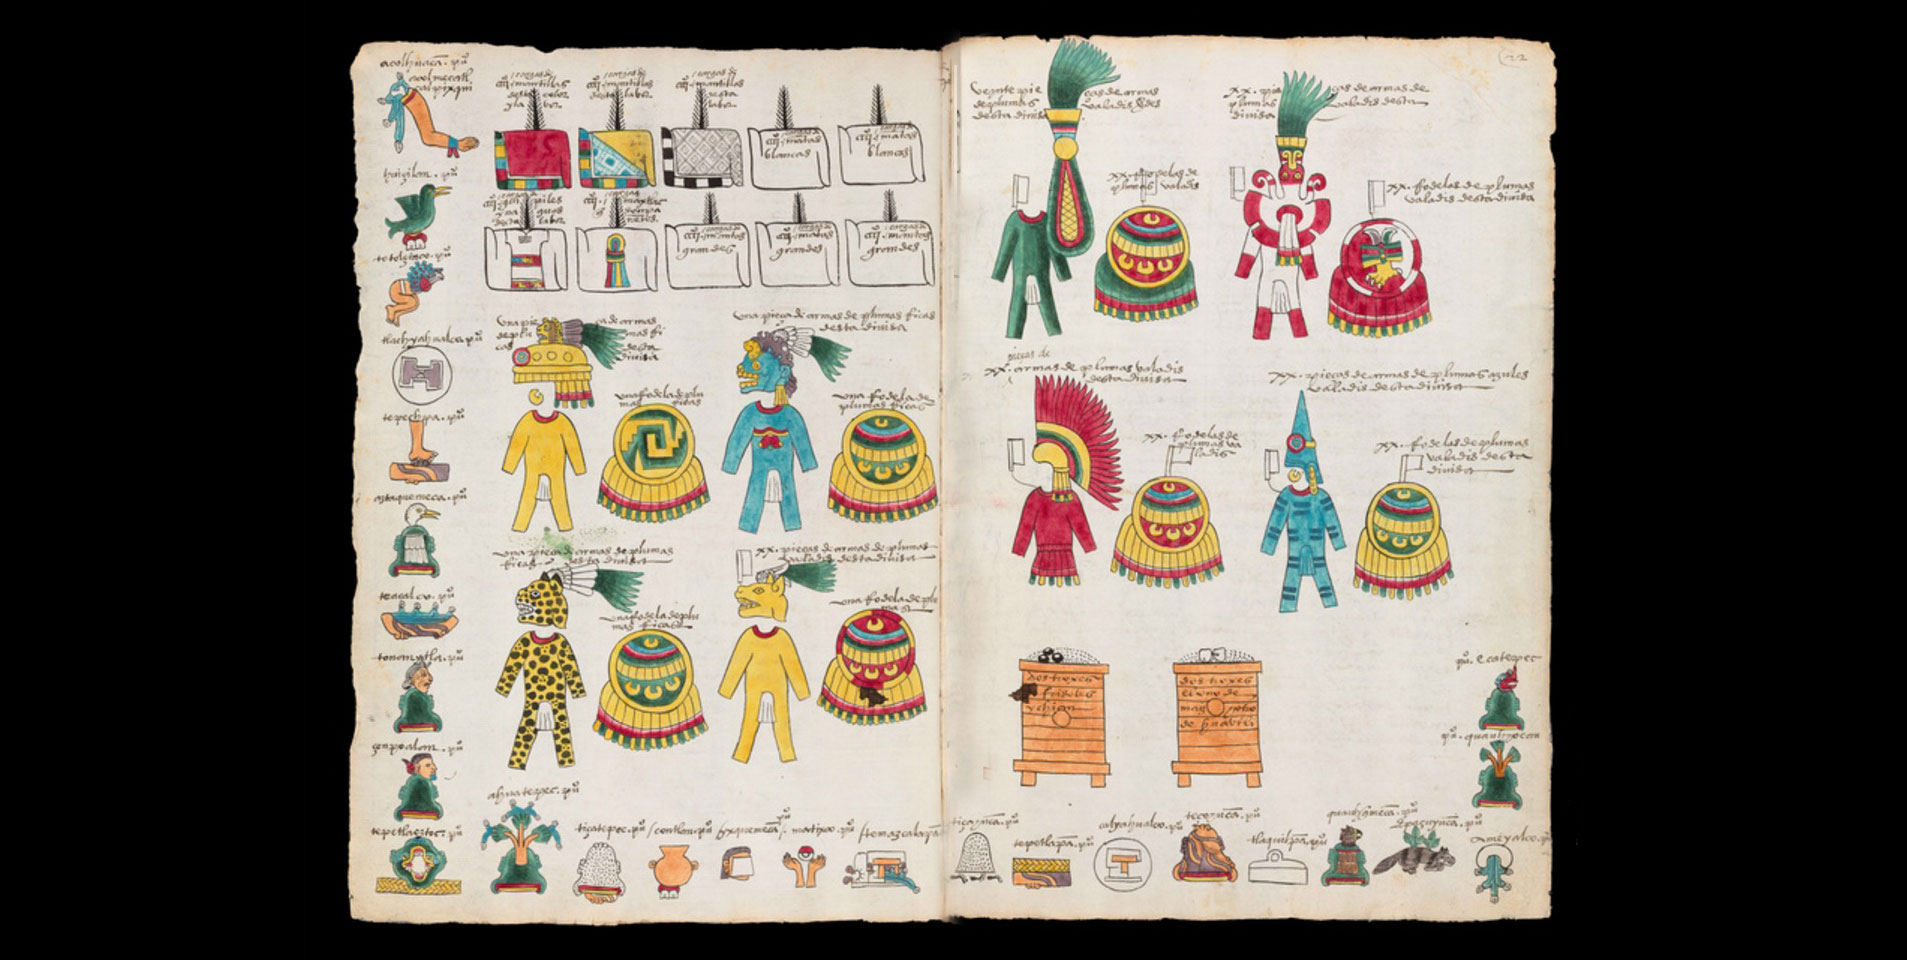 codex-mendoza-5